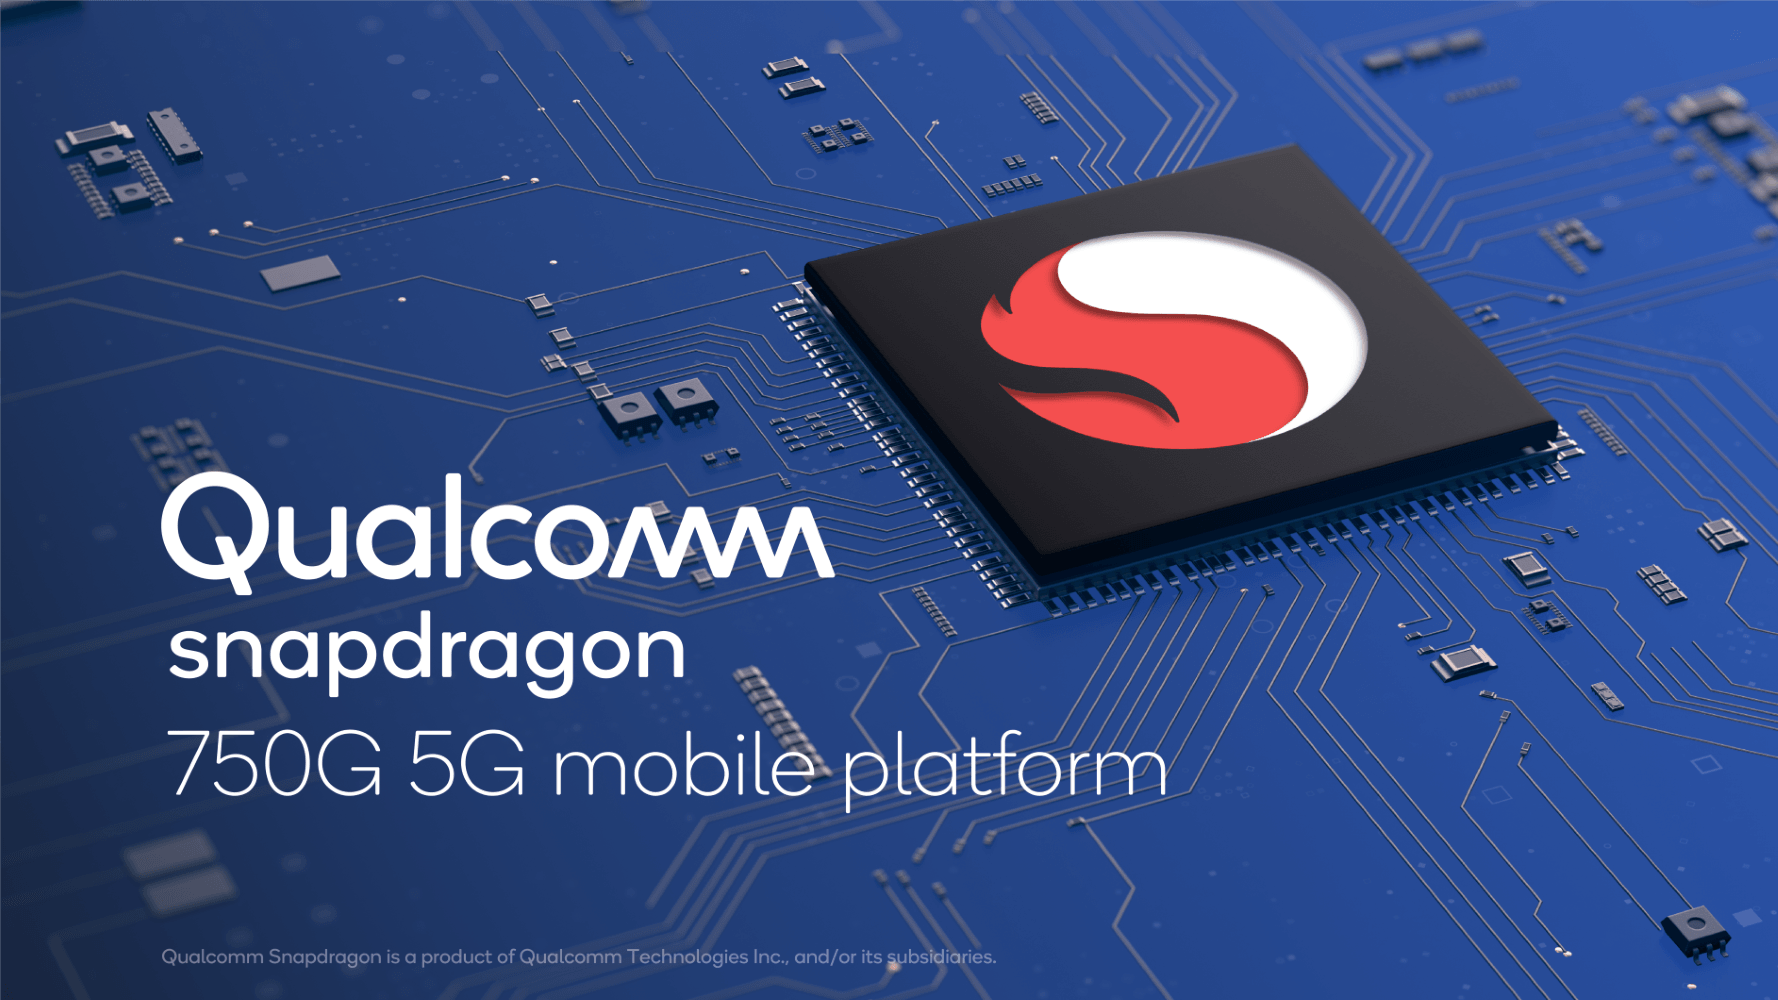 Samsung Galaxy A42 5G may have brought Snapdragon 750G before Xiaomi